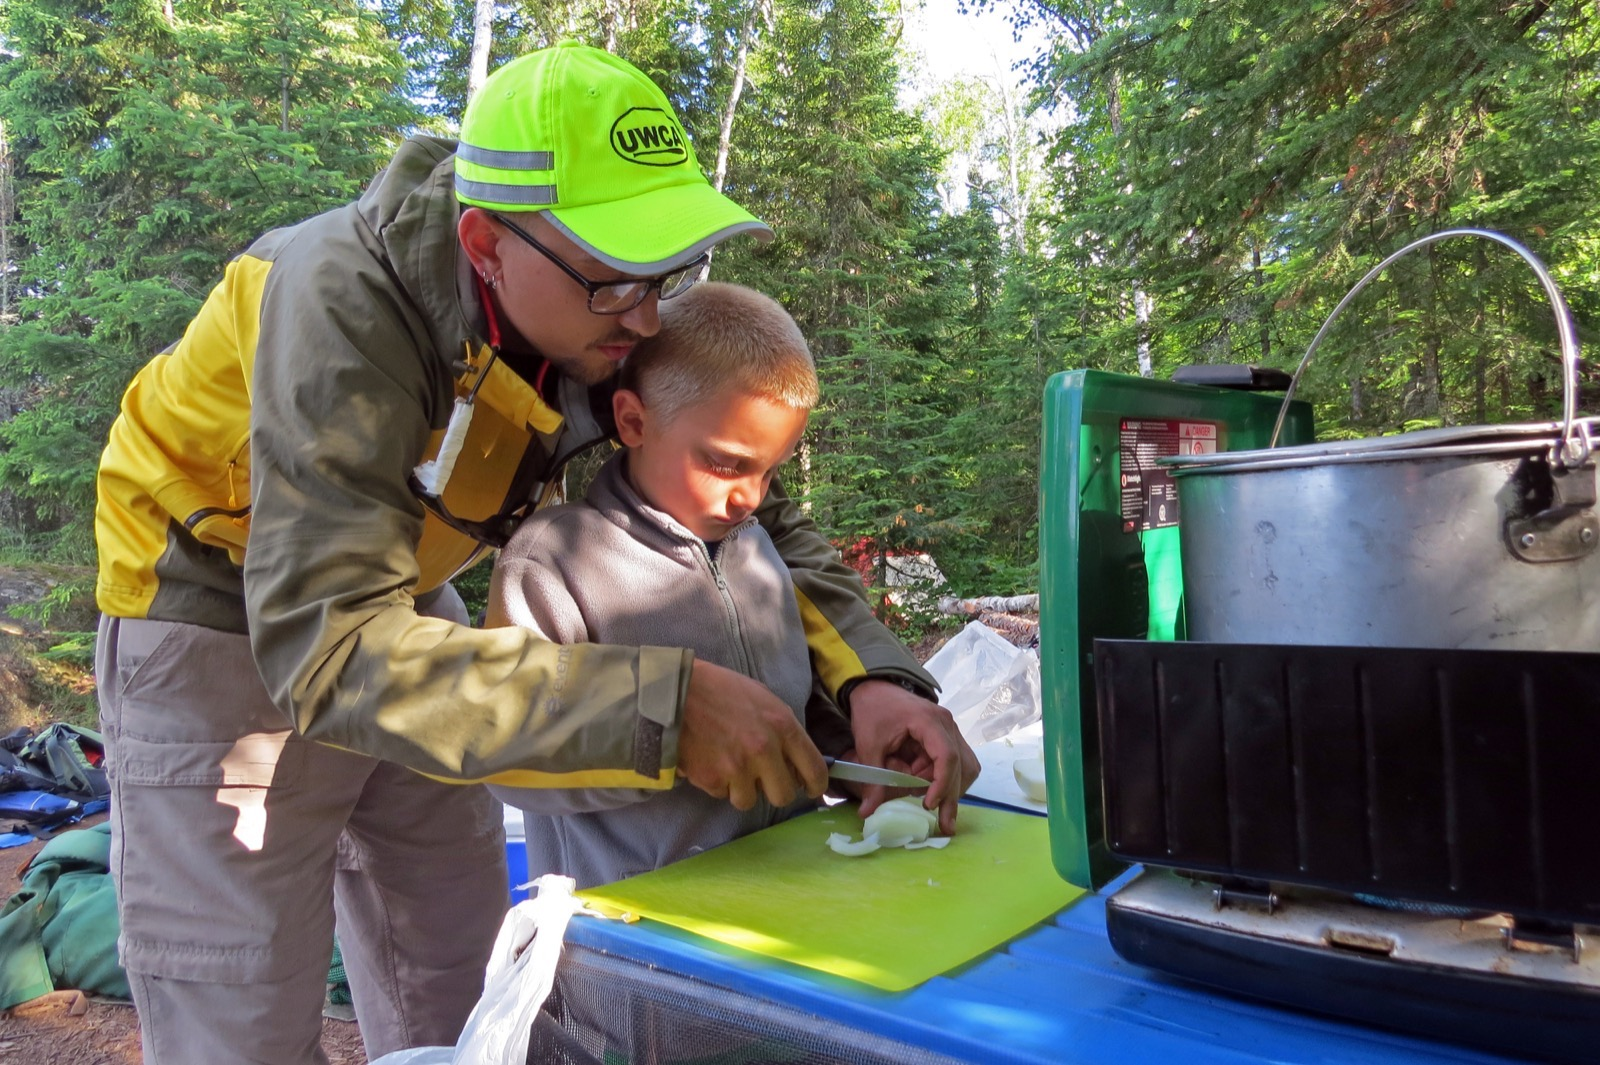 A guide teaches a kid how to chop an onion for dinner at a campsite.